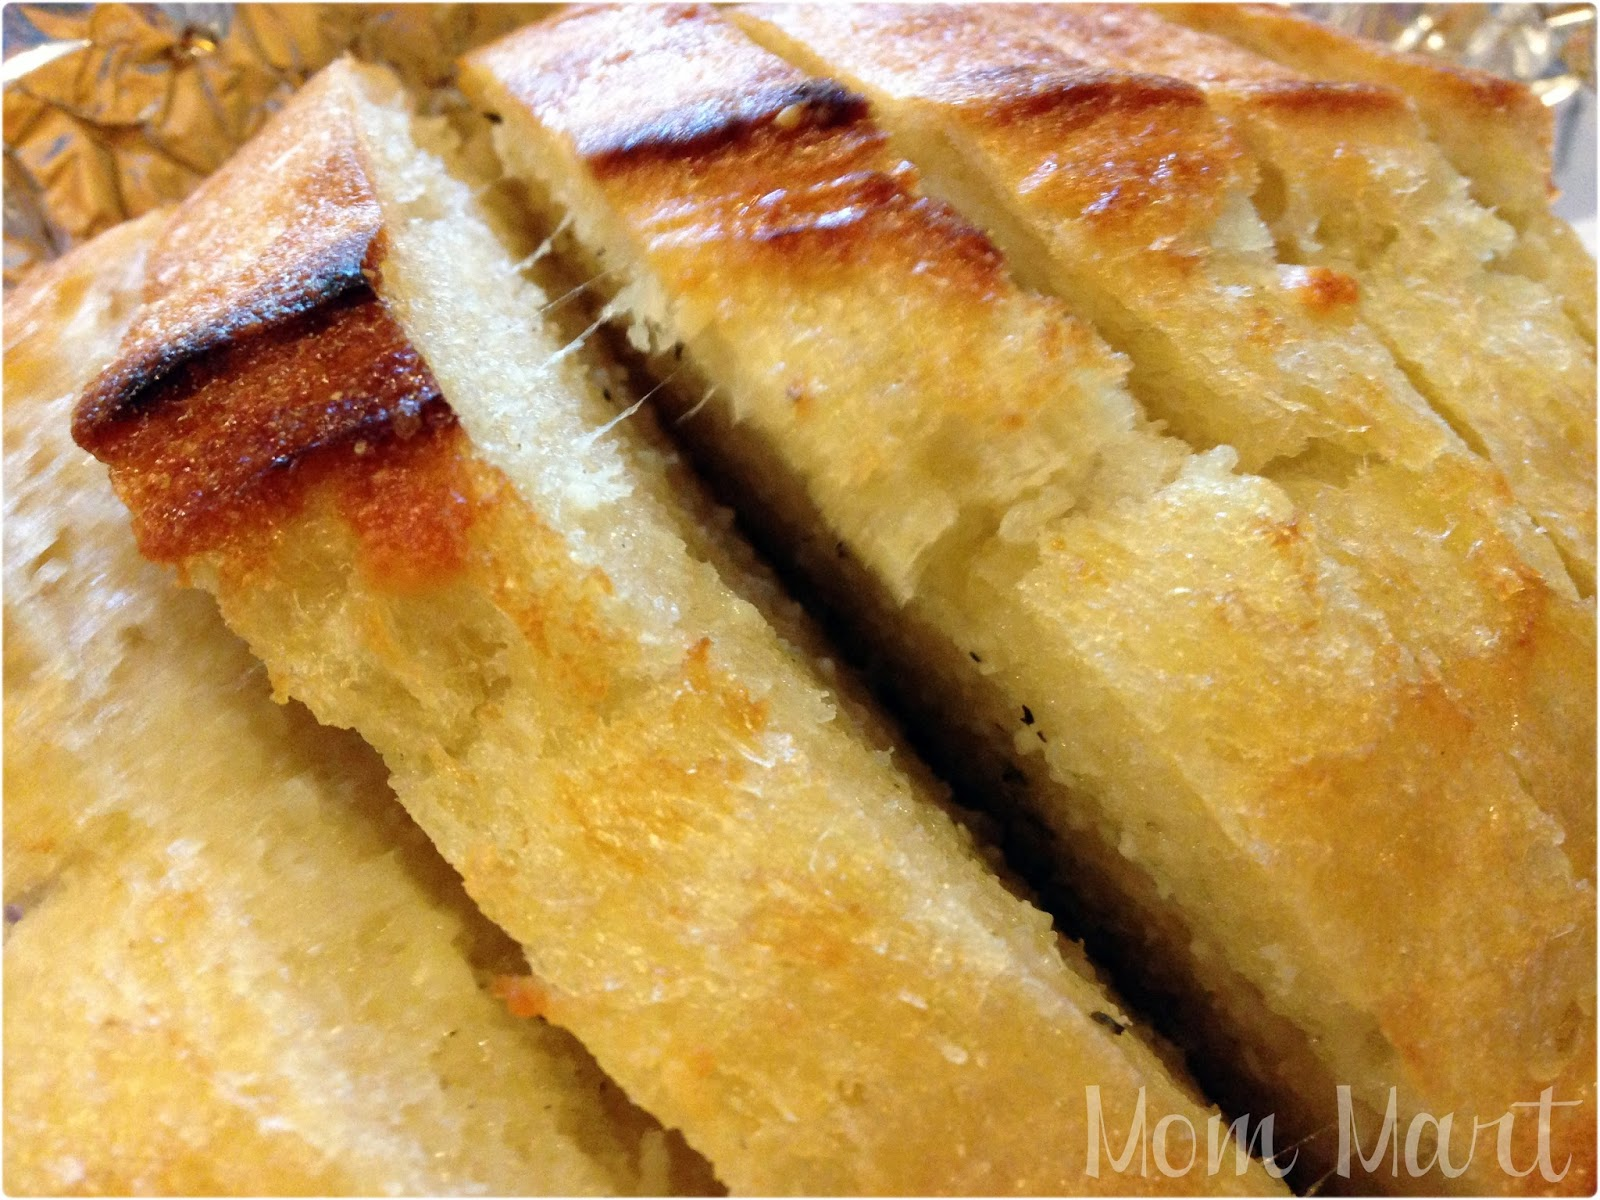 Mom Mart: It's all about the bread {Grilled French Bread #Recipe}